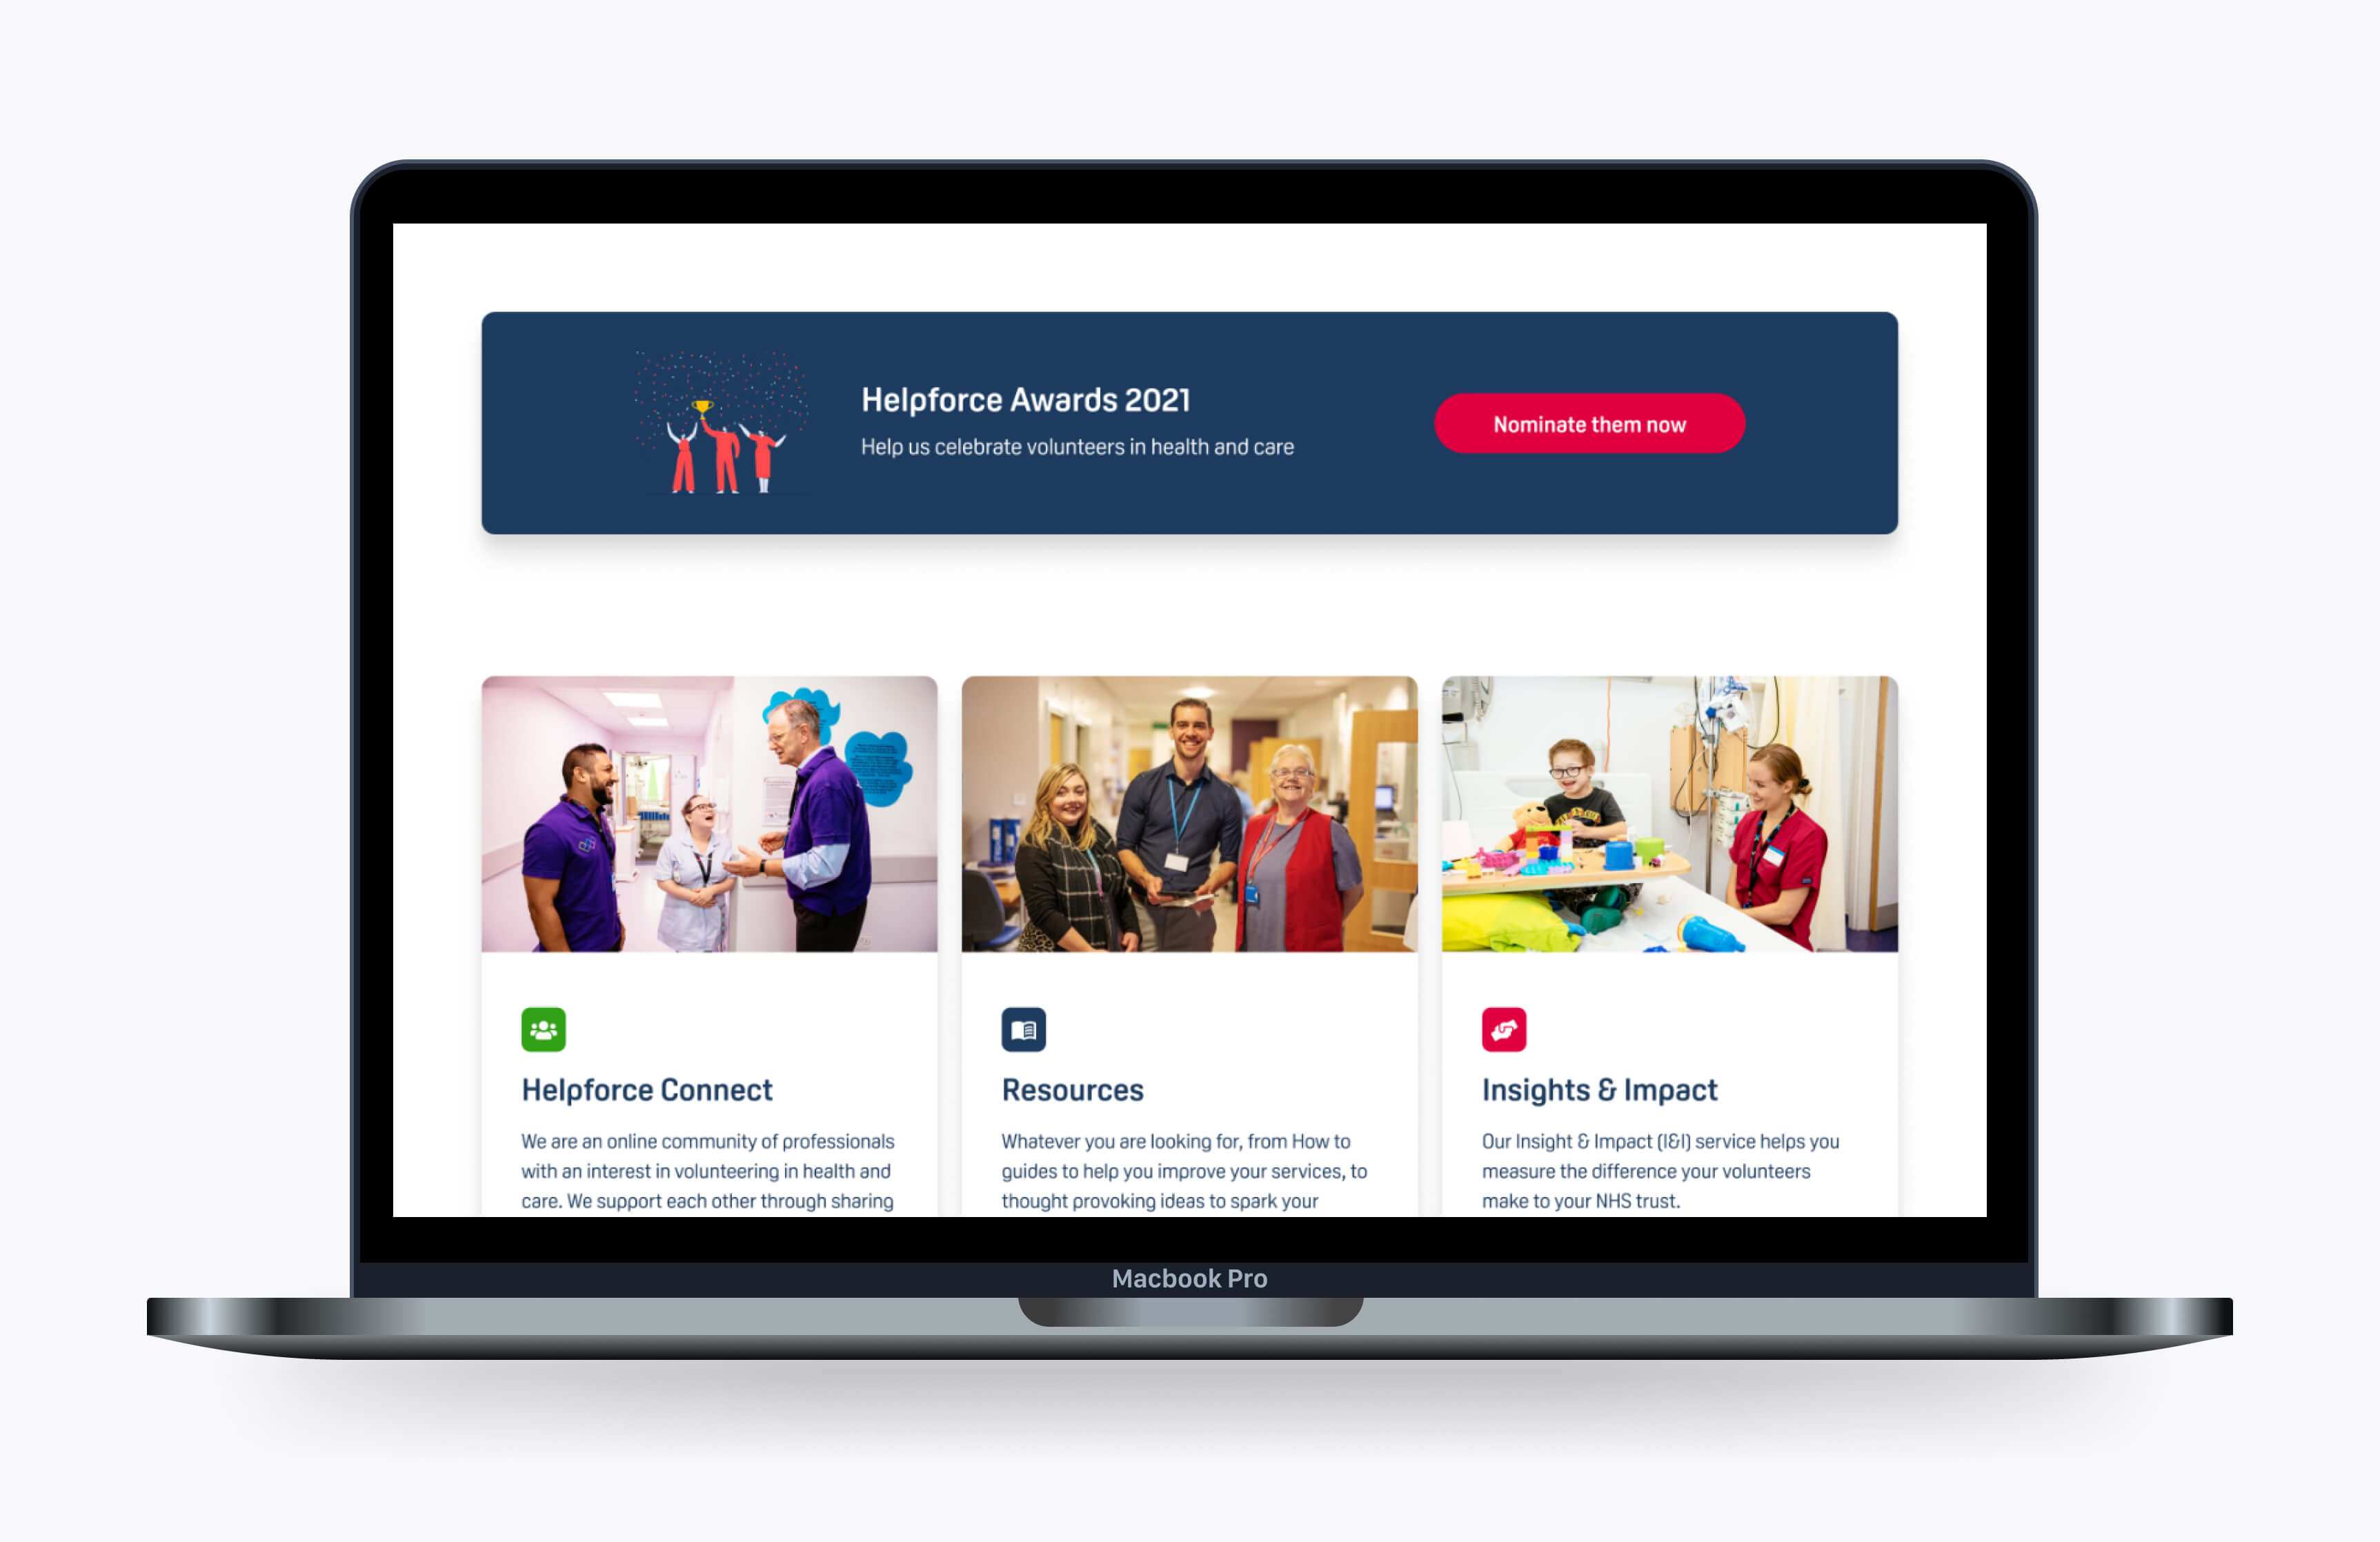 A digital platform built on Nuxt JS and Craft CMS to help connect Helpforce volunteers with their communities.